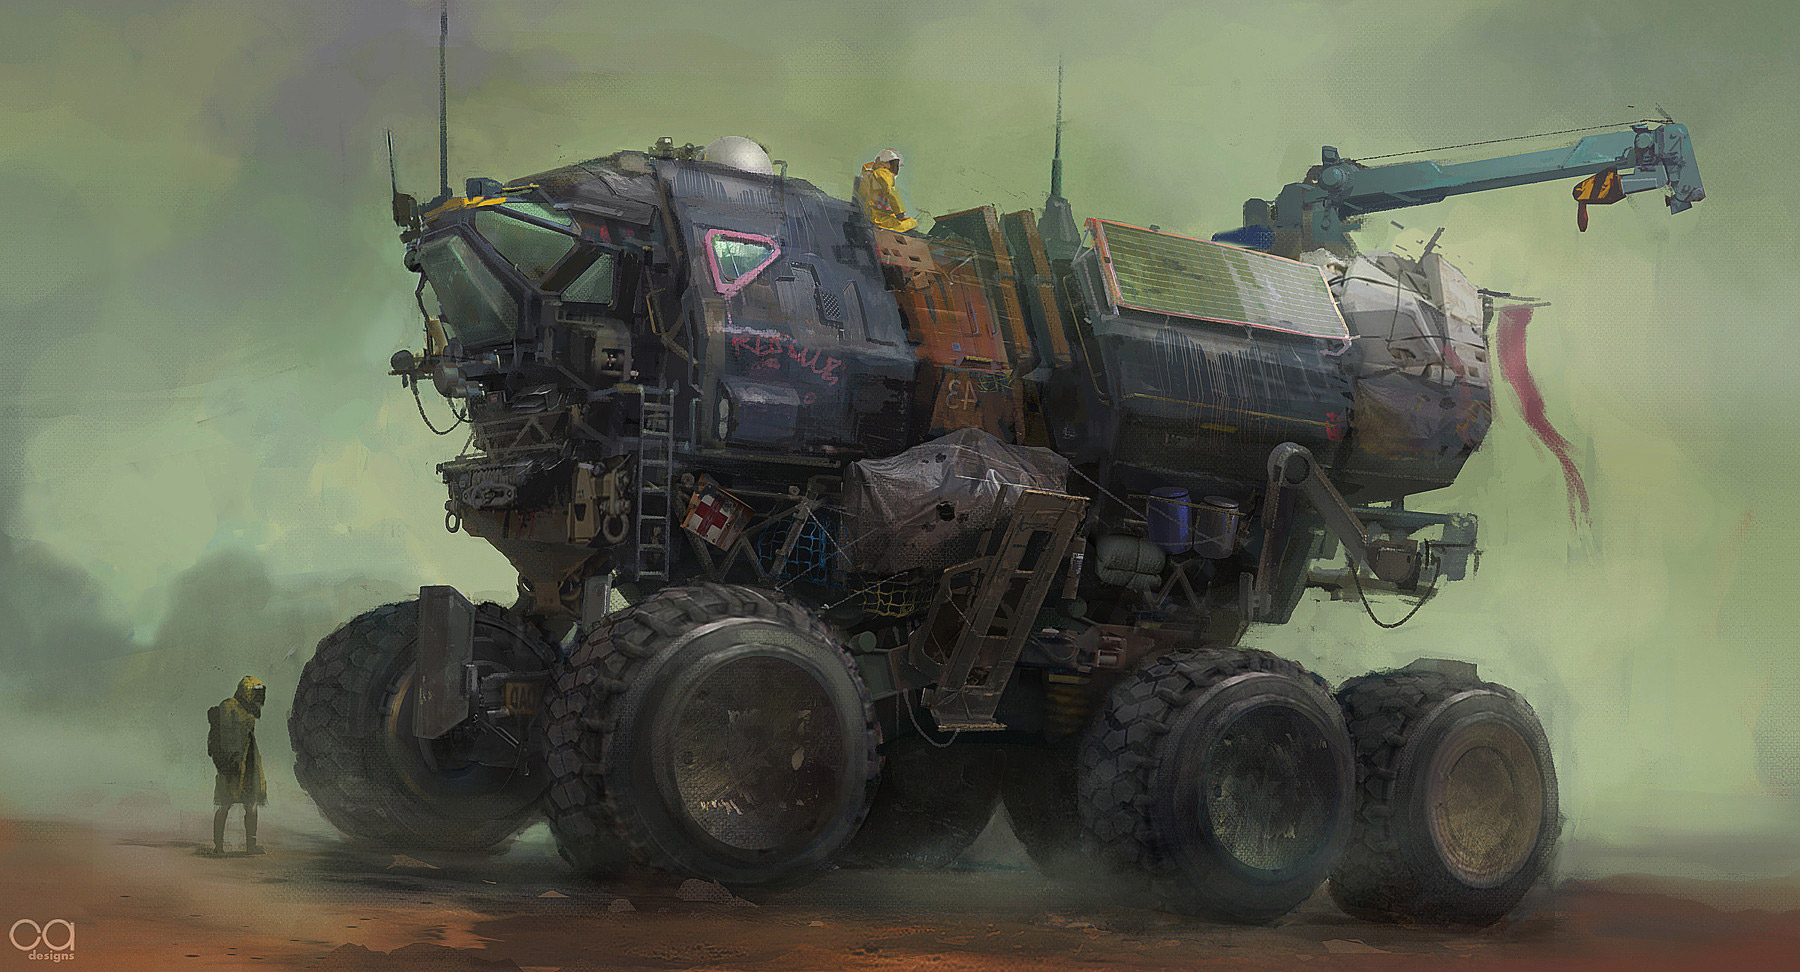 Concept Art And Tactical Vehicle